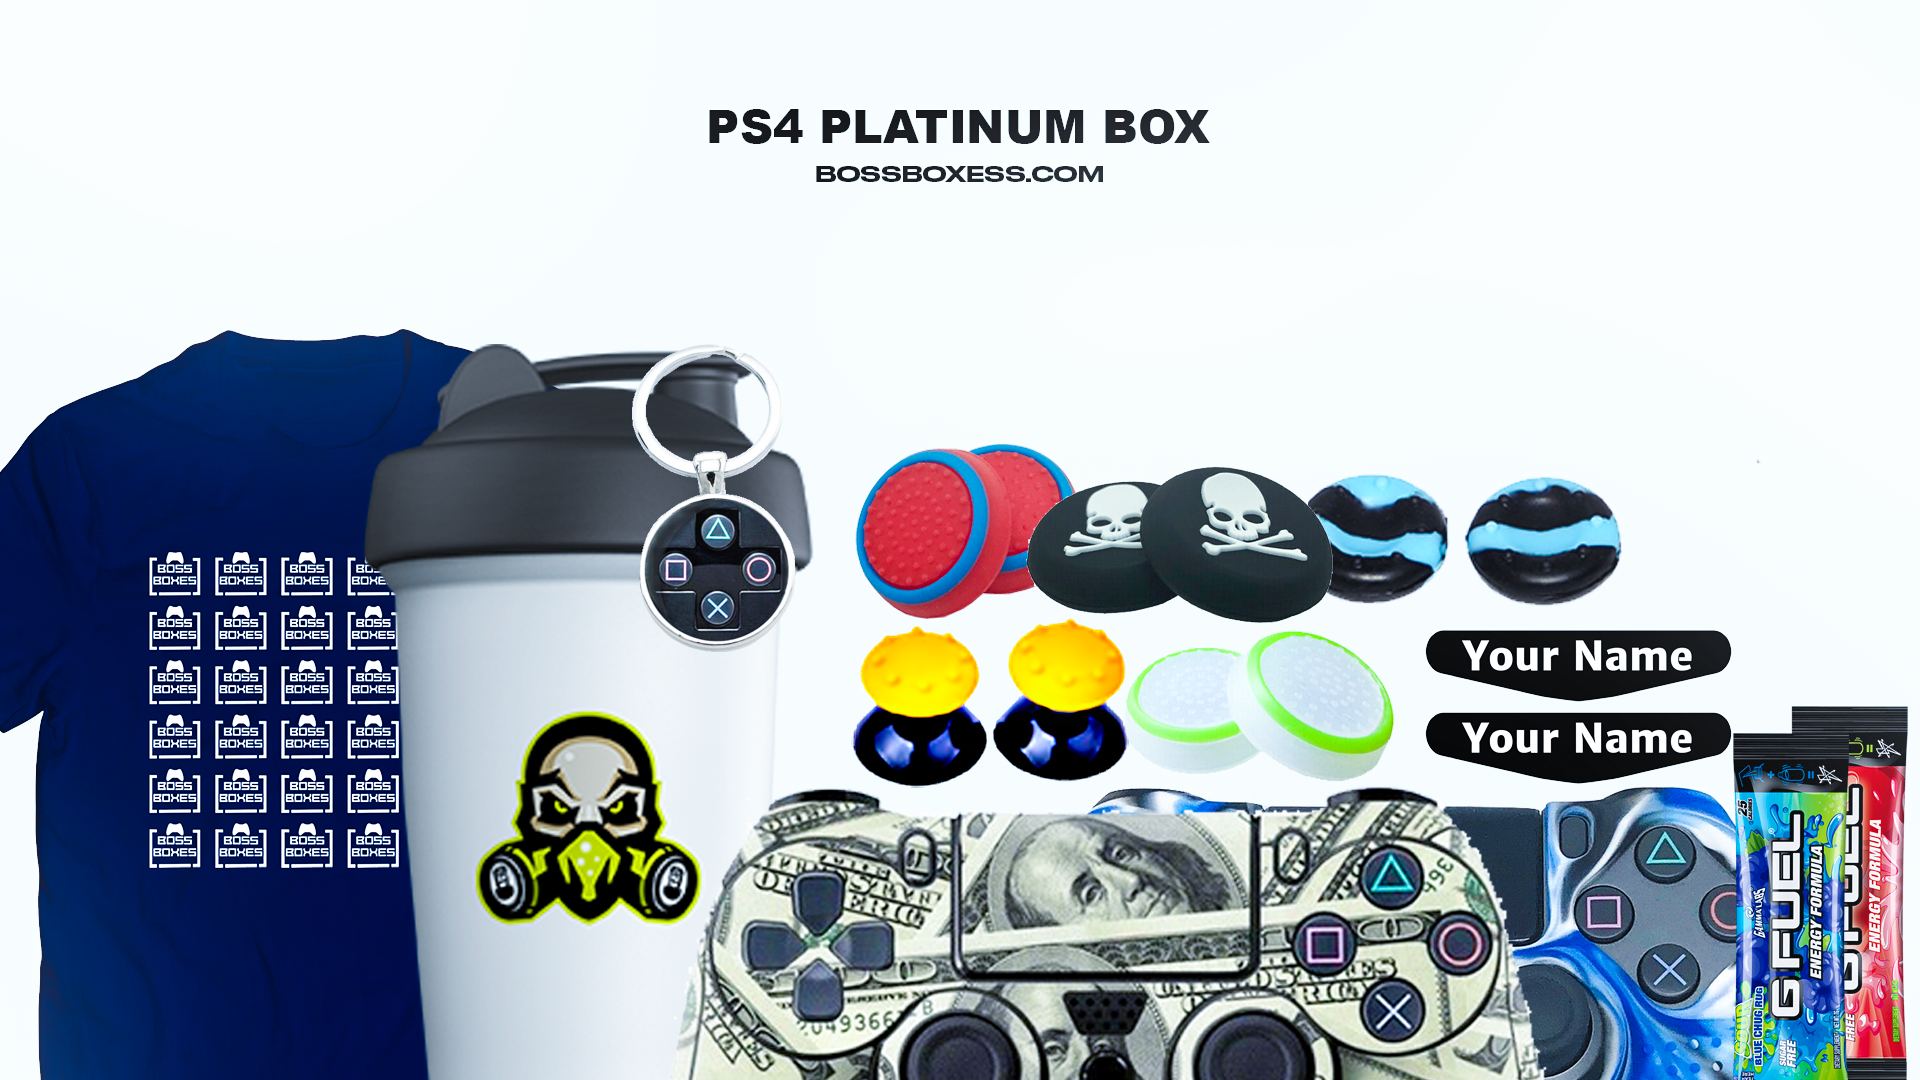 boss-boxes-store - Platinum Box PS4